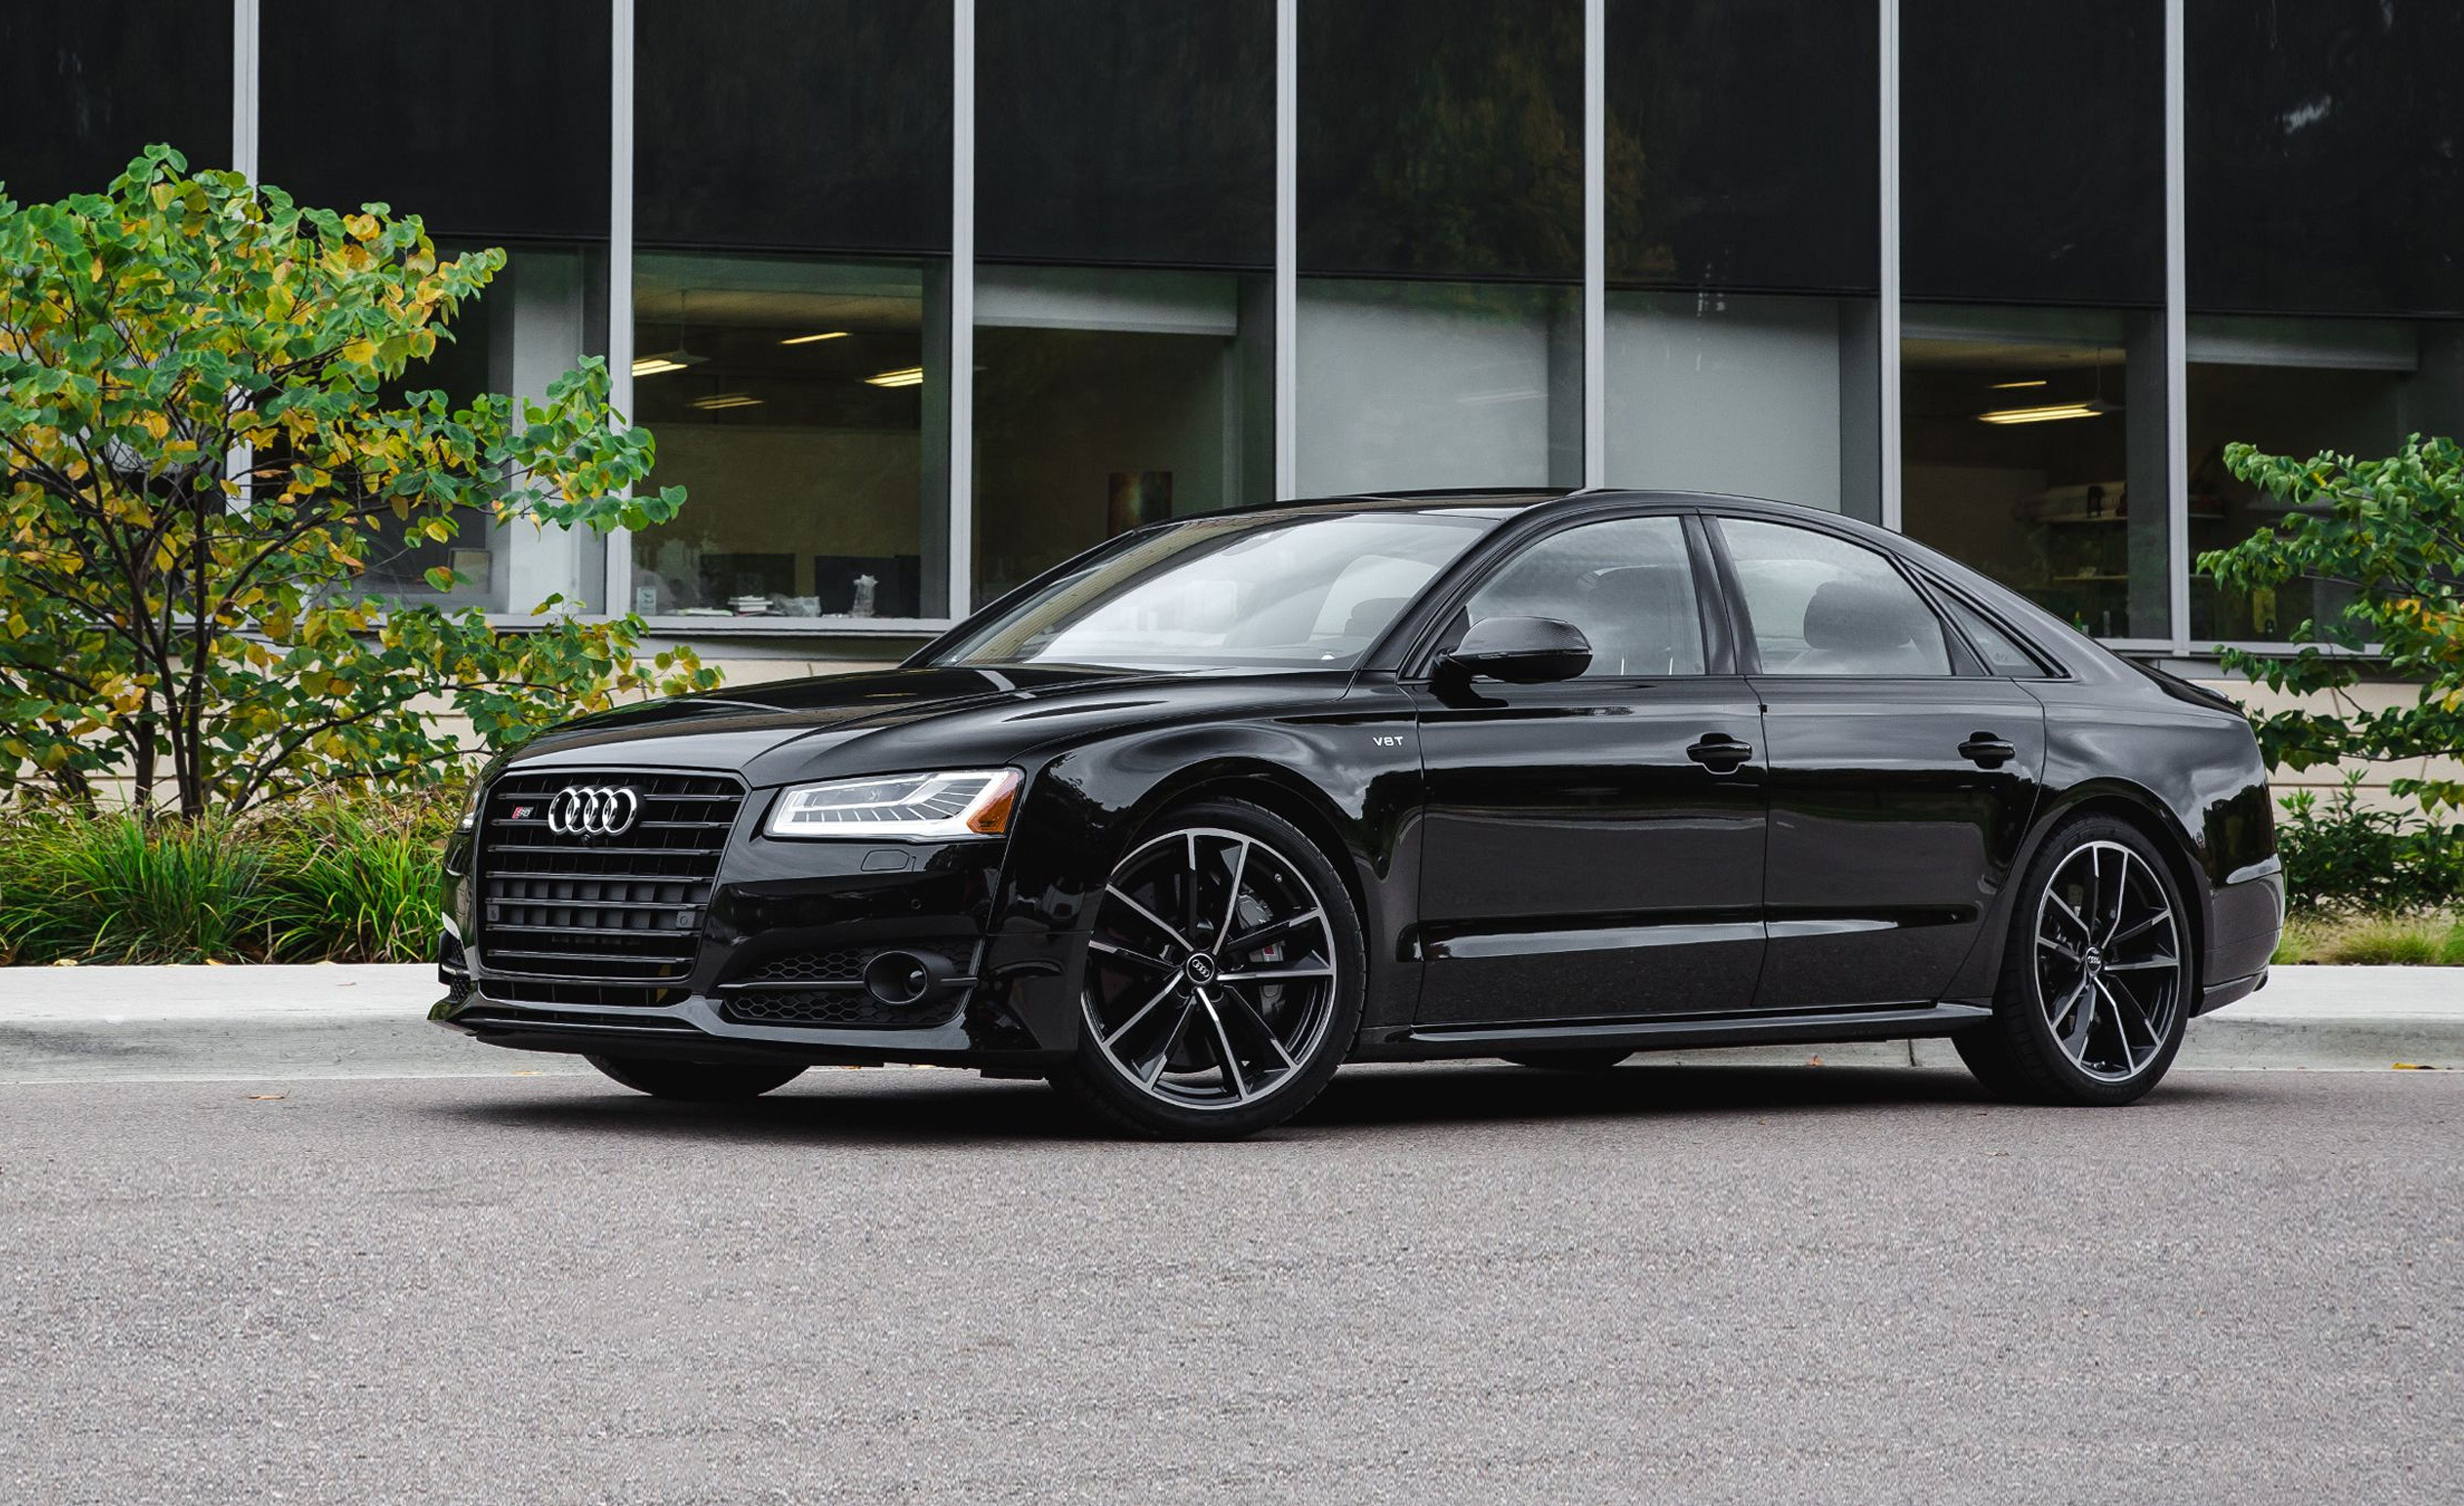 2018 audi s8 reviews audi s8 price photos and specs. Black Bedroom Furniture Sets. Home Design Ideas